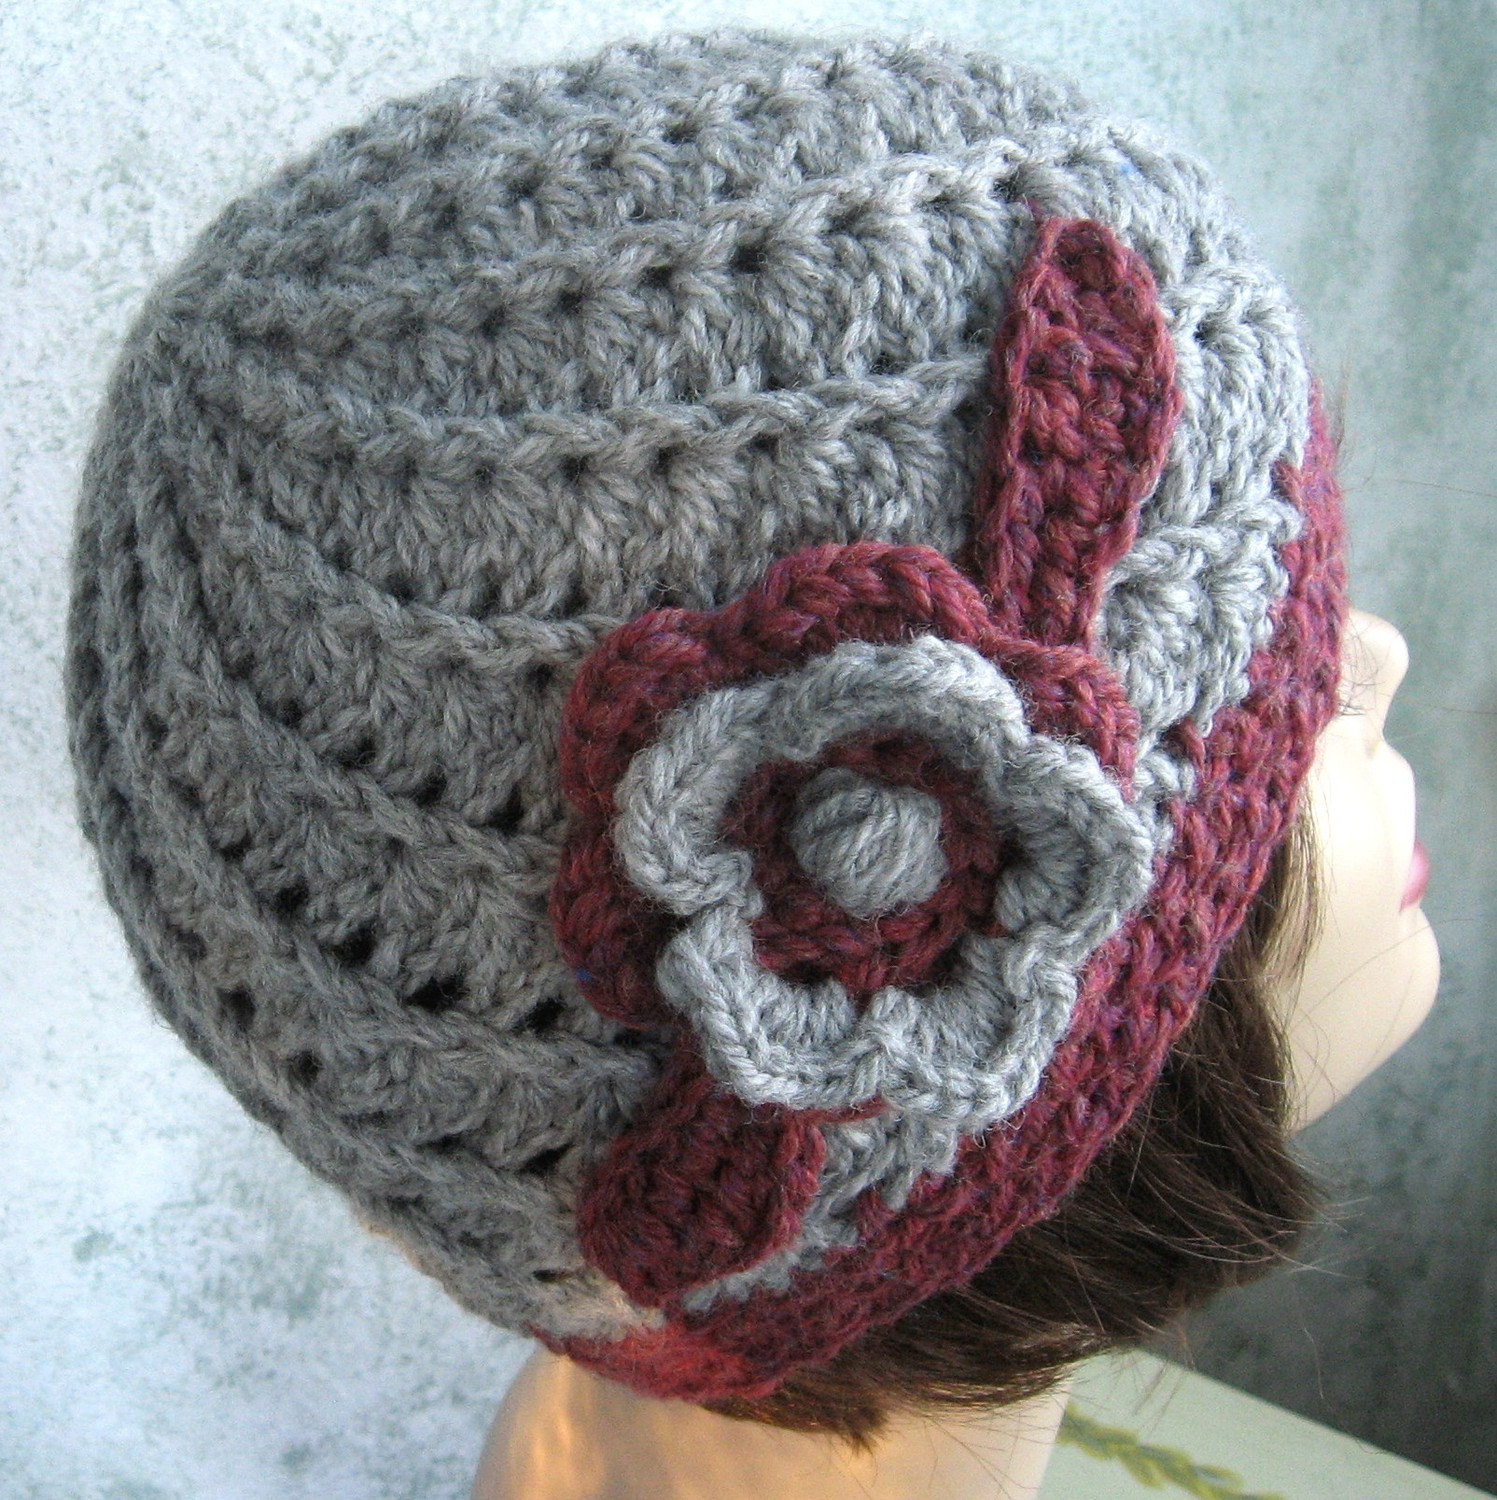 Crochet Hats for Women Fresh Womens Crochet Hat Pattern Spiral Rib with Double Flower Trim Of Perfect 33 Ideas Crochet Hats for Women